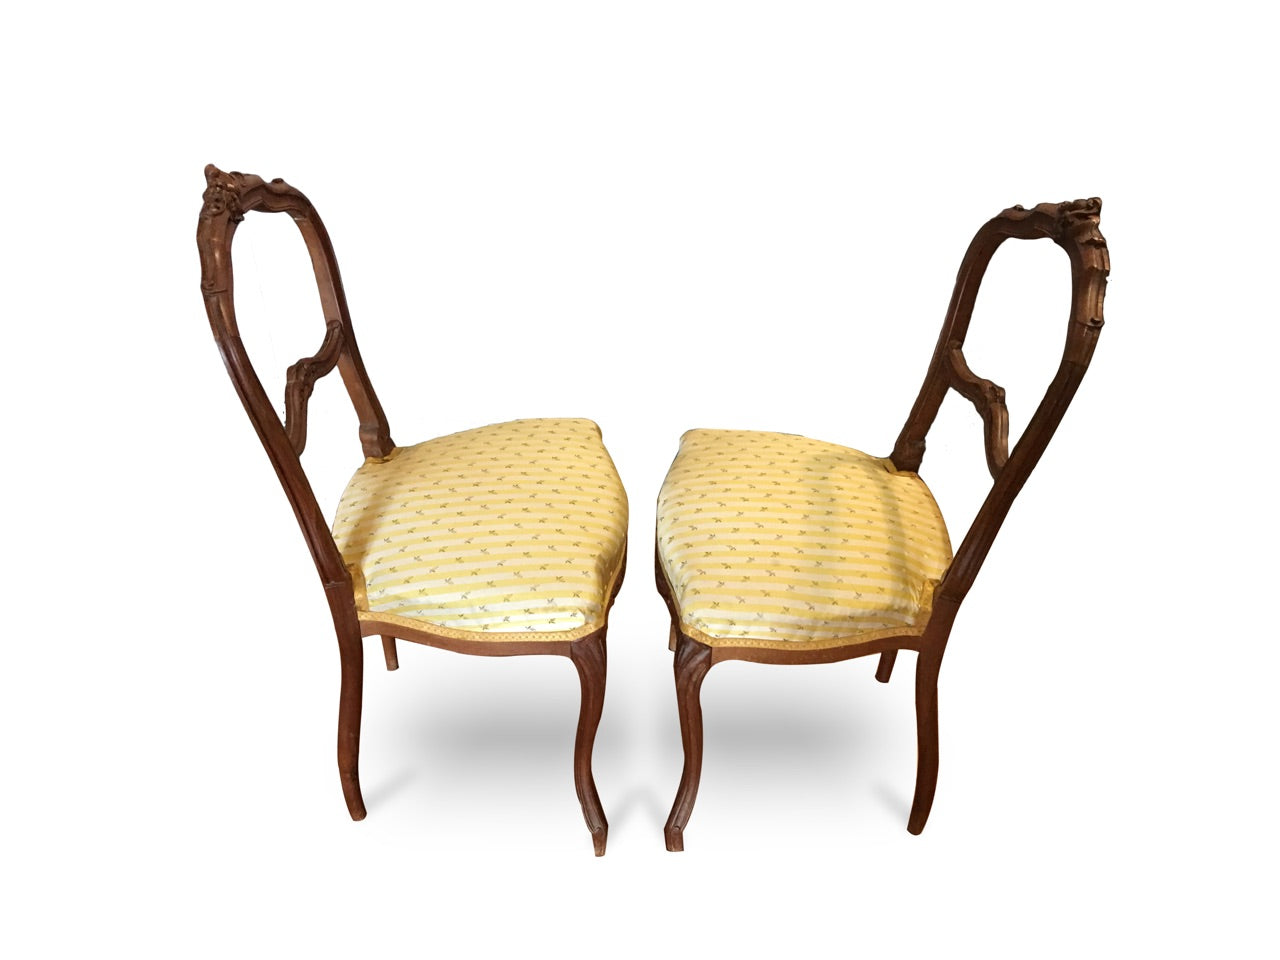 Pair of 19th Century French Chairs, carved oak wood - New York - French Antiques www.Decoparis.com